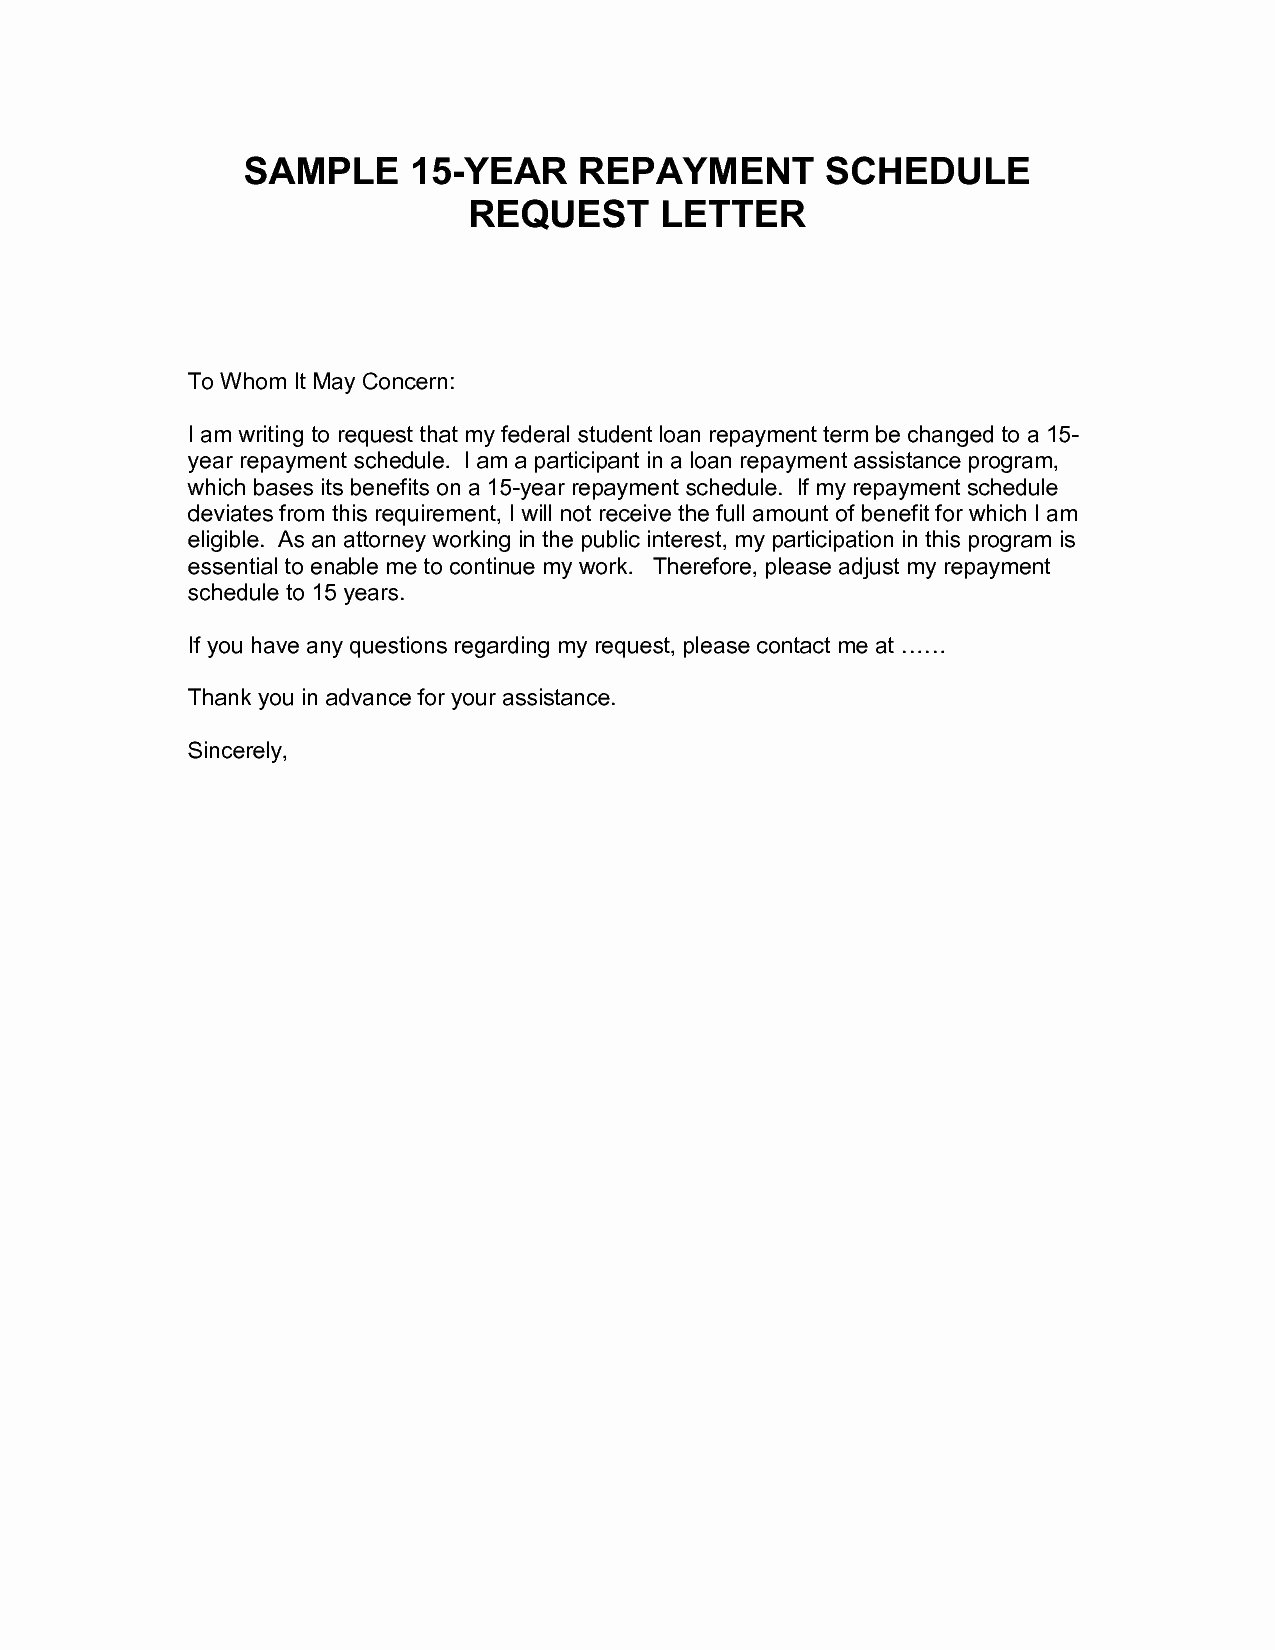 Personal Loan Letter format Lovely Index Of Cdn 29 2005 253